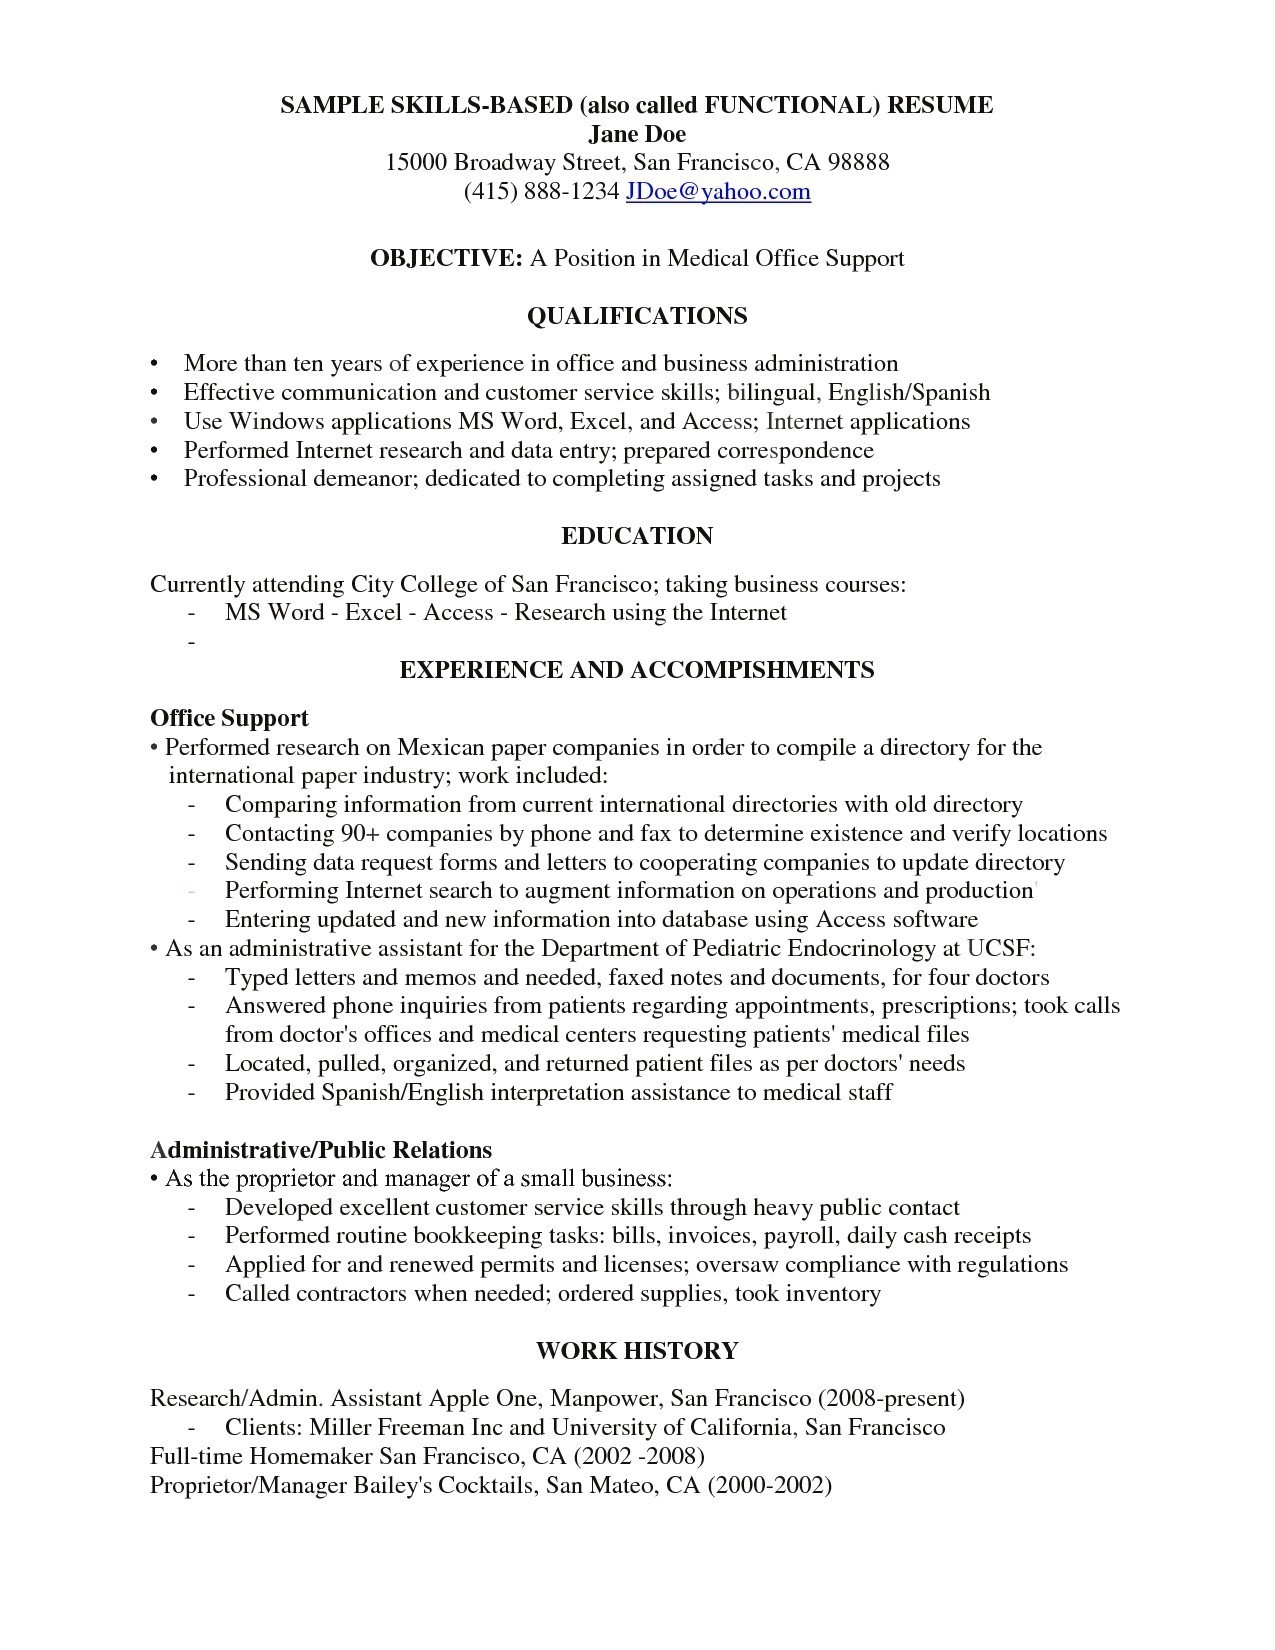 Personal Care assistant Resume - event Coordinator Resume New Personal Care assistant Resume